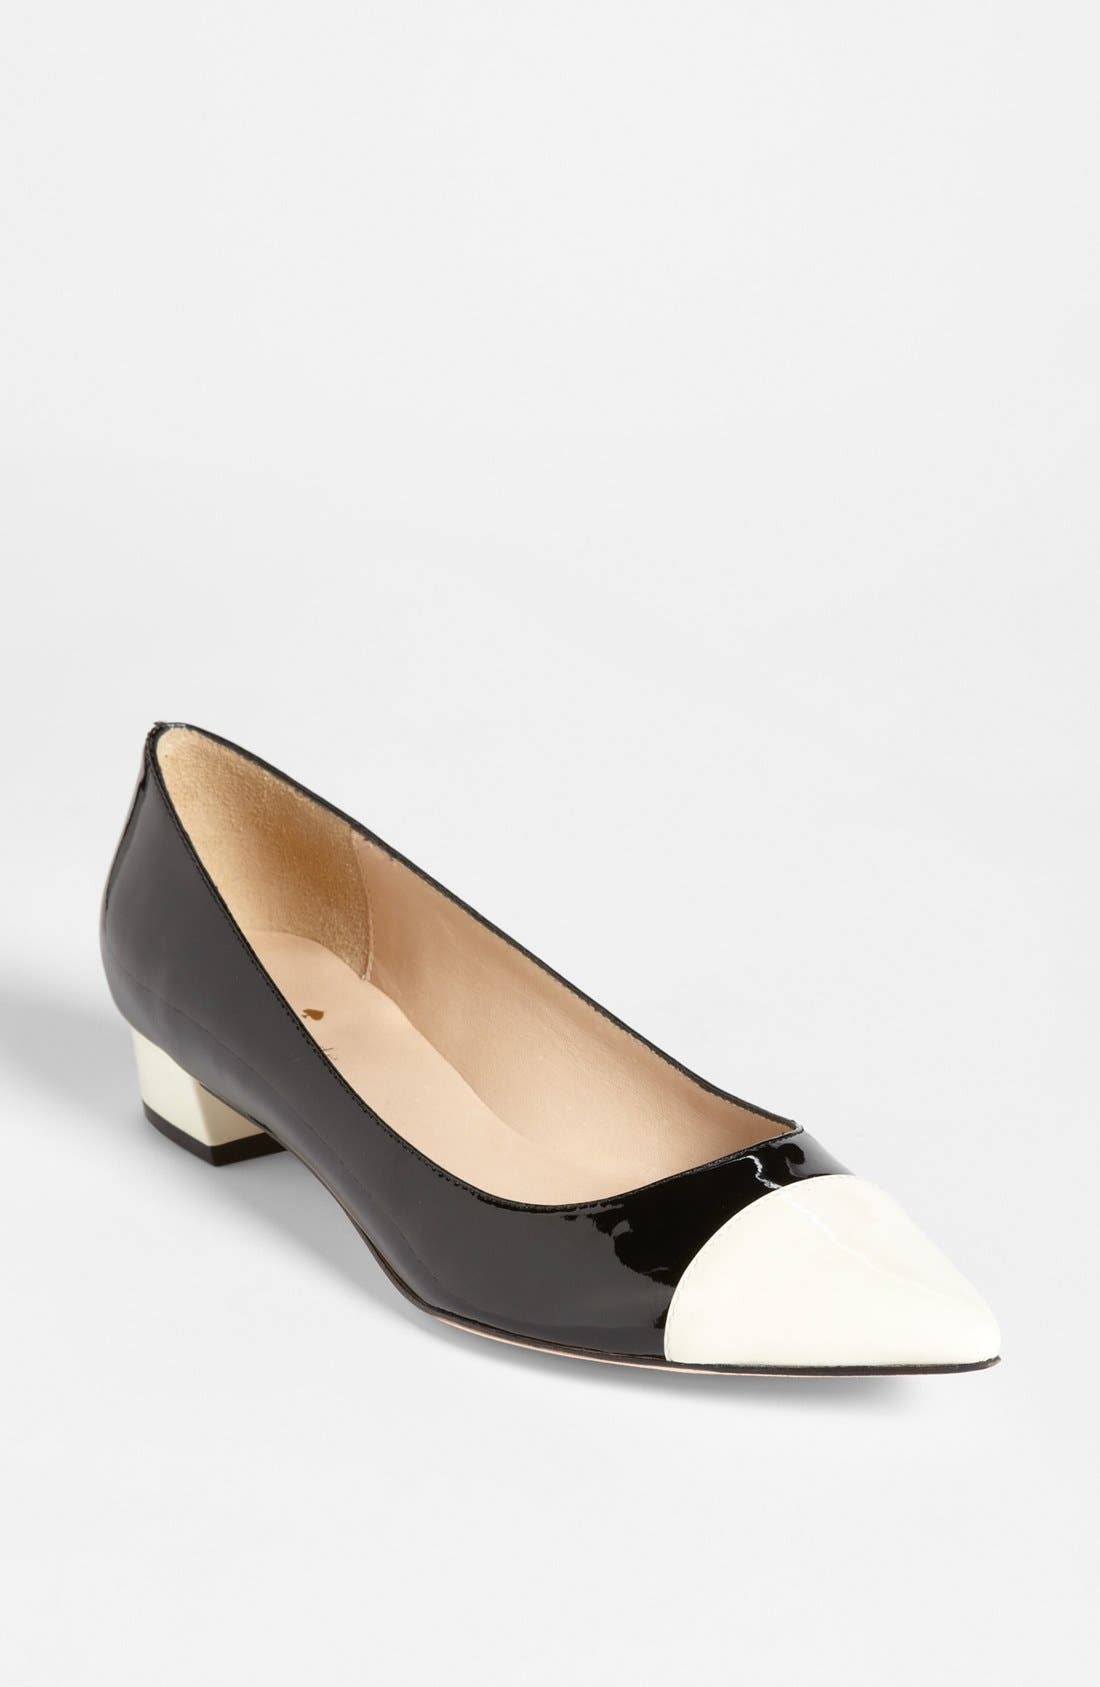 Alternate Image 1 Selected - kate spade new york 'adie' pump